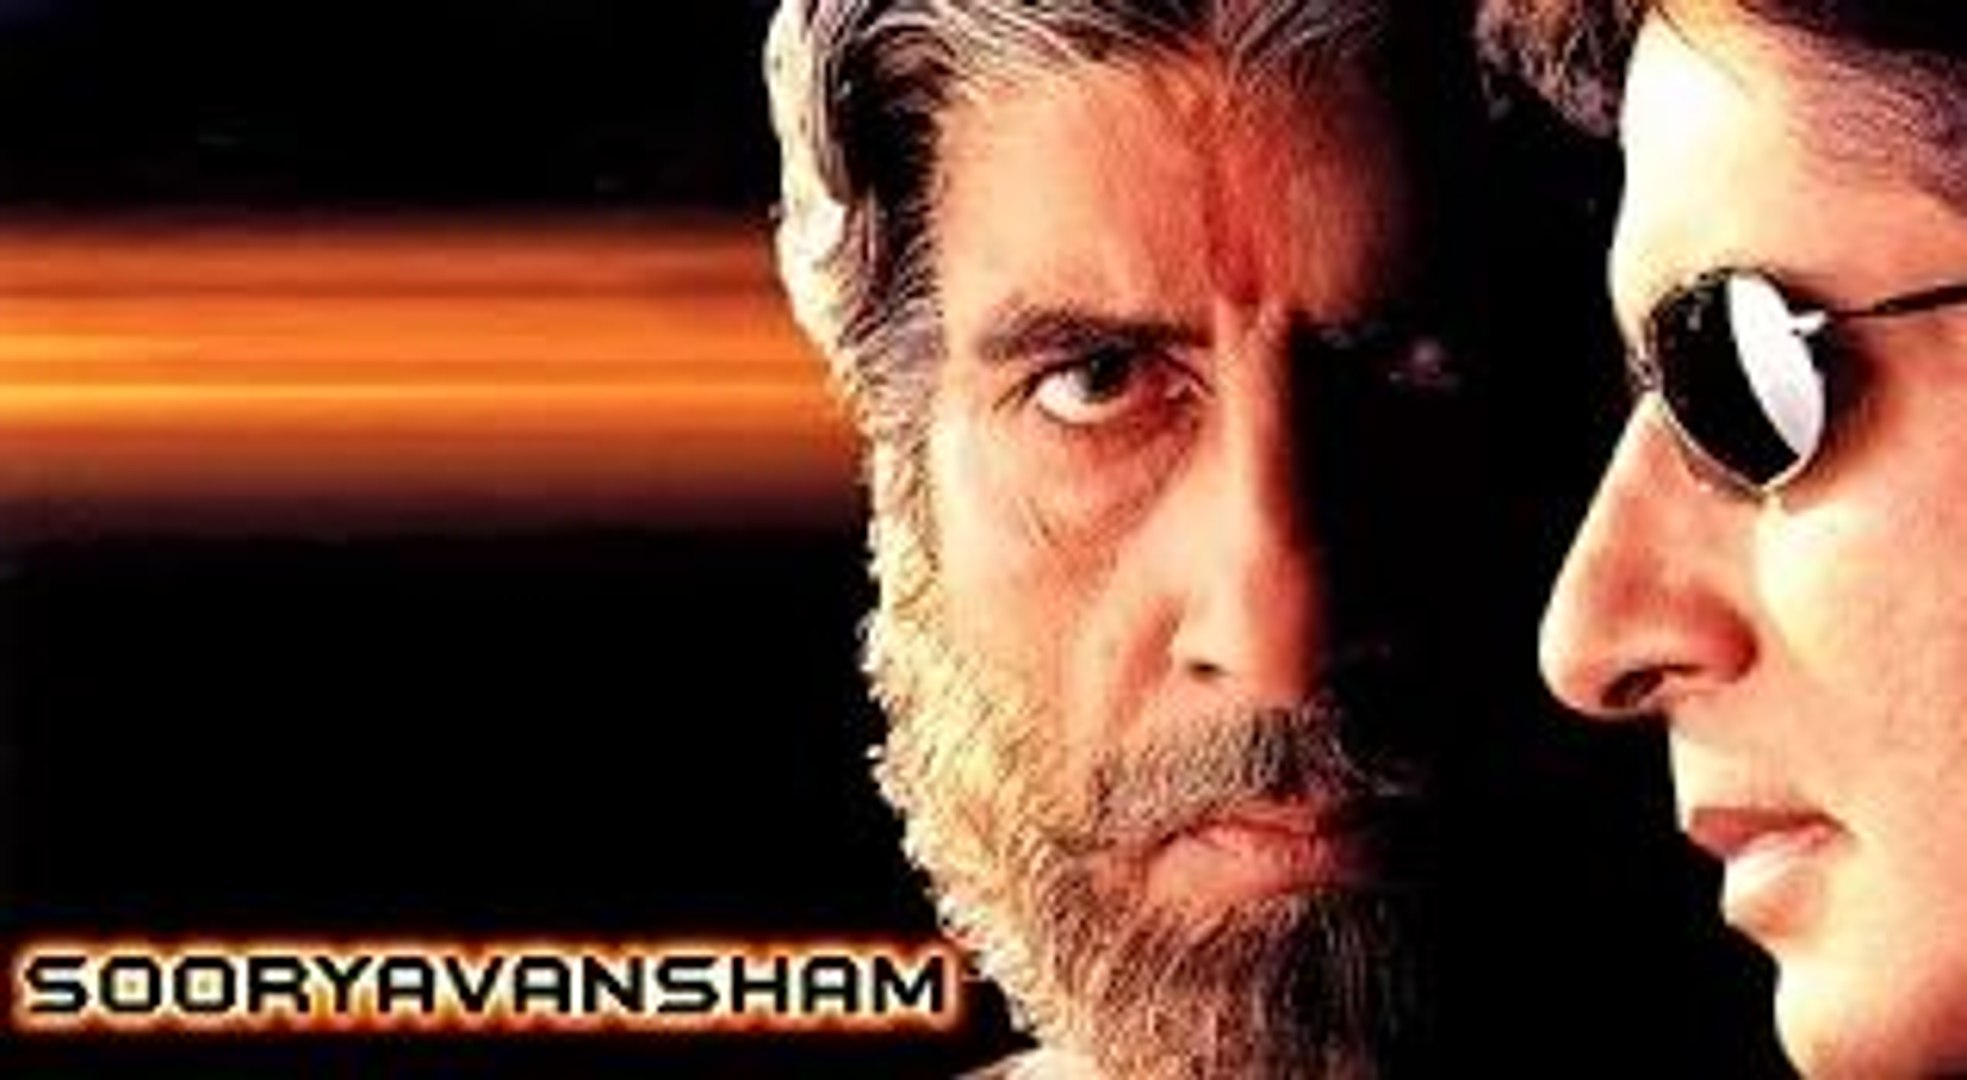 Sooryavansham Full Movie | Amitabh Bachchan, Soundarya | Blockbuster  Bollywood Movie